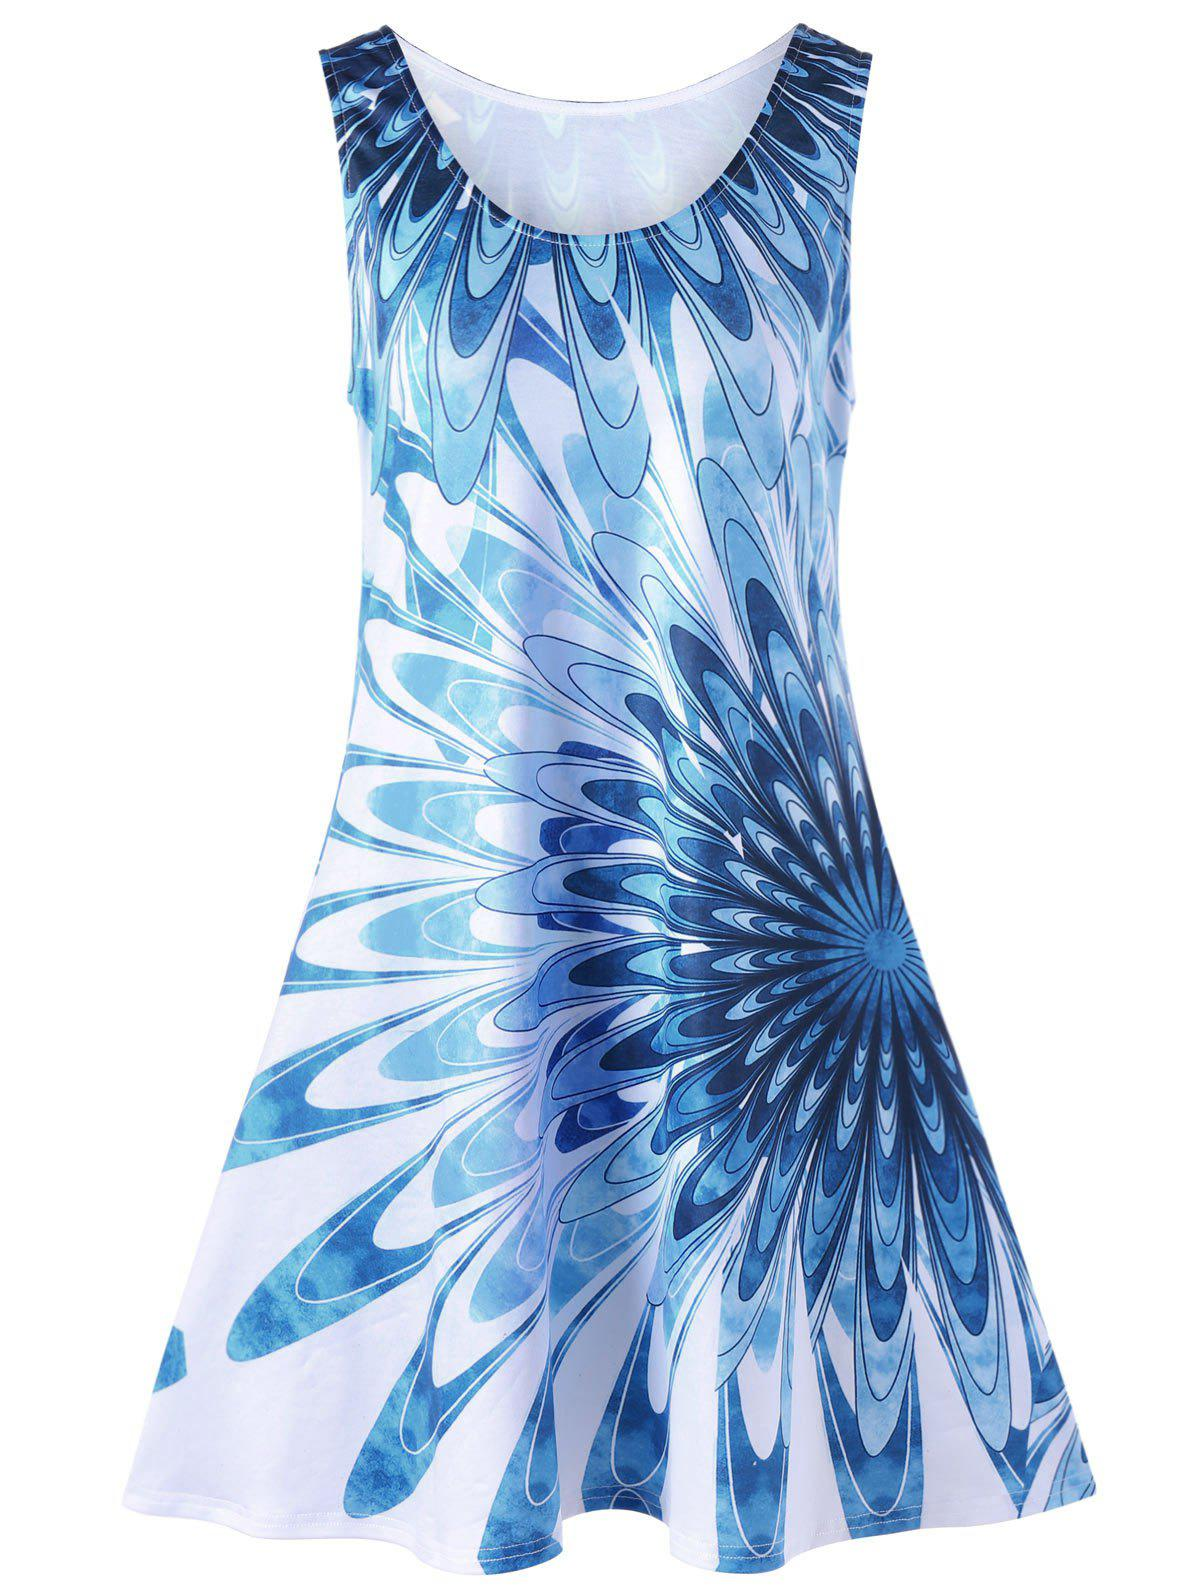 Floral Sleeveless Plus Size Tank Trapeze DressWOMEN<br><br>Size: 4XL; Color: BLUE; Style: Casual; Material: Polyester,Spandex; Silhouette: A-Line; Dresses Length: Mini; Neckline: Scoop Neck; Sleeve Length: Sleeveless; Pattern Type: Floral; With Belt: No; Season: Summer; Weight: 0.2600kg; Package Contents: 1 x Dress;